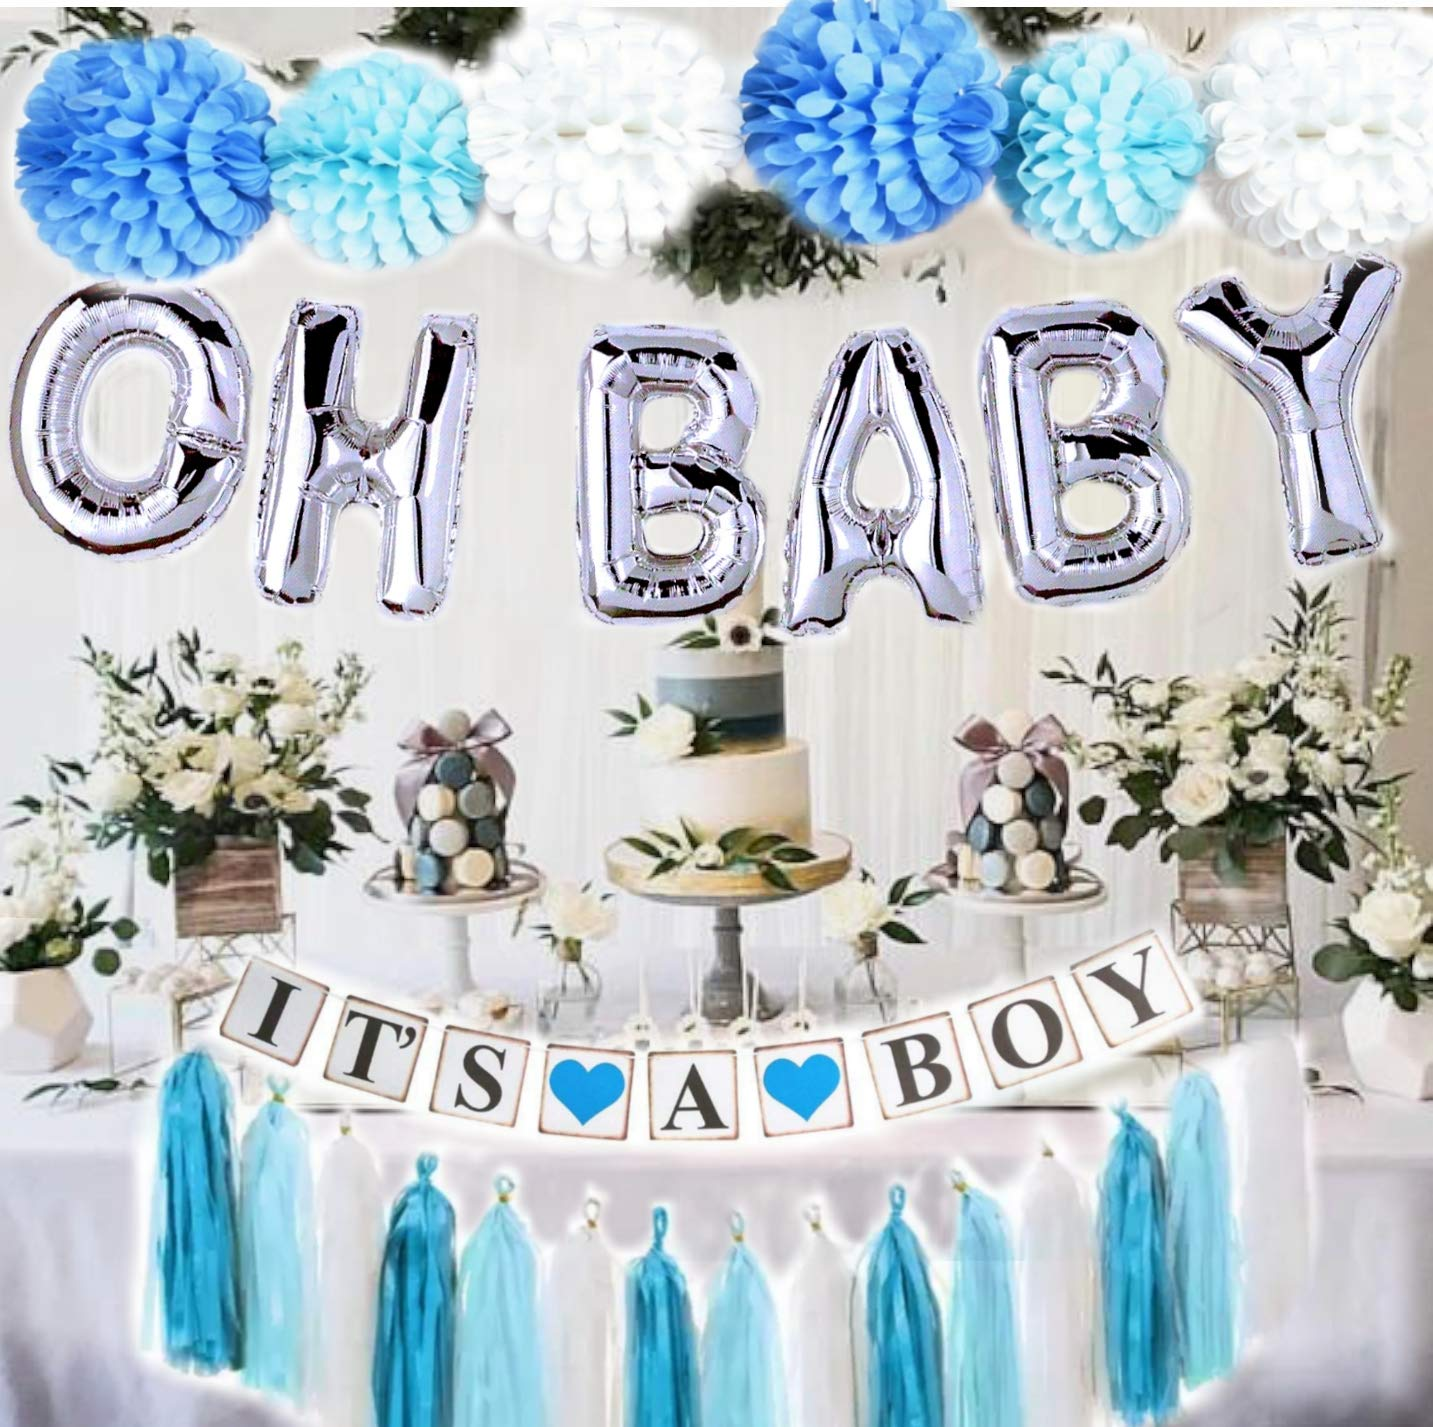 Baby Shower Decorations for Boy  OH BABY letters balloons  6 pompoms  It's a Boy Banner  Blue Tasells  Blue Silver and Grey Baby Shower  Party Decorations  Blue backdrop Centerpiece by Gogoshel